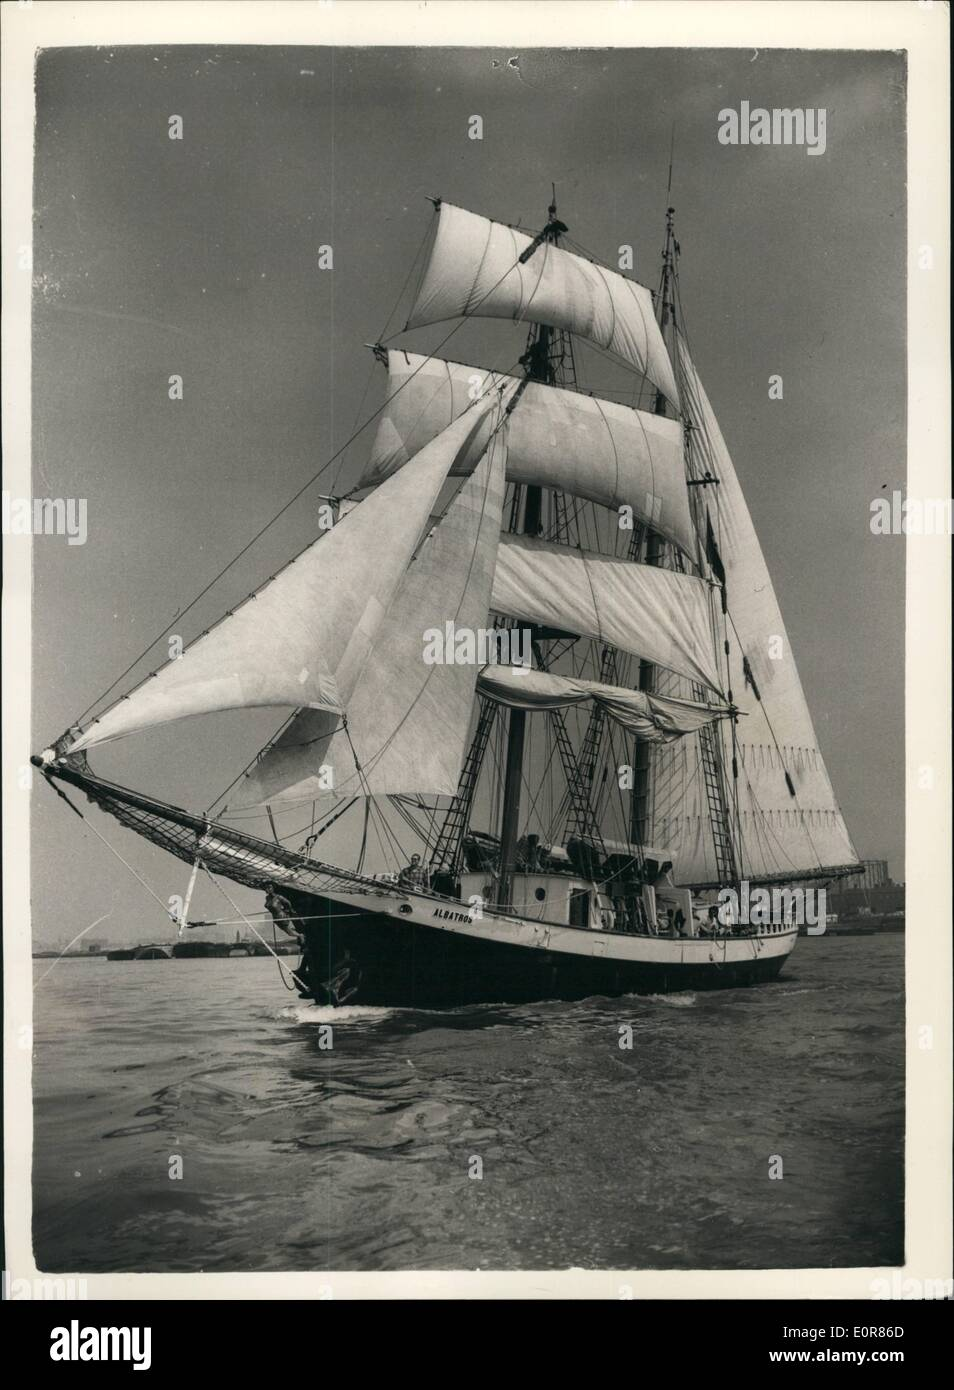 Jul. 07, 1958 - Brigartine Arrives In London: The 117-ft brigantine ''Albatros'', owned and captained by American novelist, Ernest K. Gann, which left New York on June 15th, arrived at Tower Bridge today, after being delayed by bad weather in the Atlantic. Among the crew is Dodie Post, who was captain of the U.S. Women's Olympic team in 1948, and who is one of the few woman navigators over to guide a sailing ship on a trans-ocean voyage. Photo shows View of the ''Albatron'' under  Greenwich on the way to Tower  today. - Stock Image